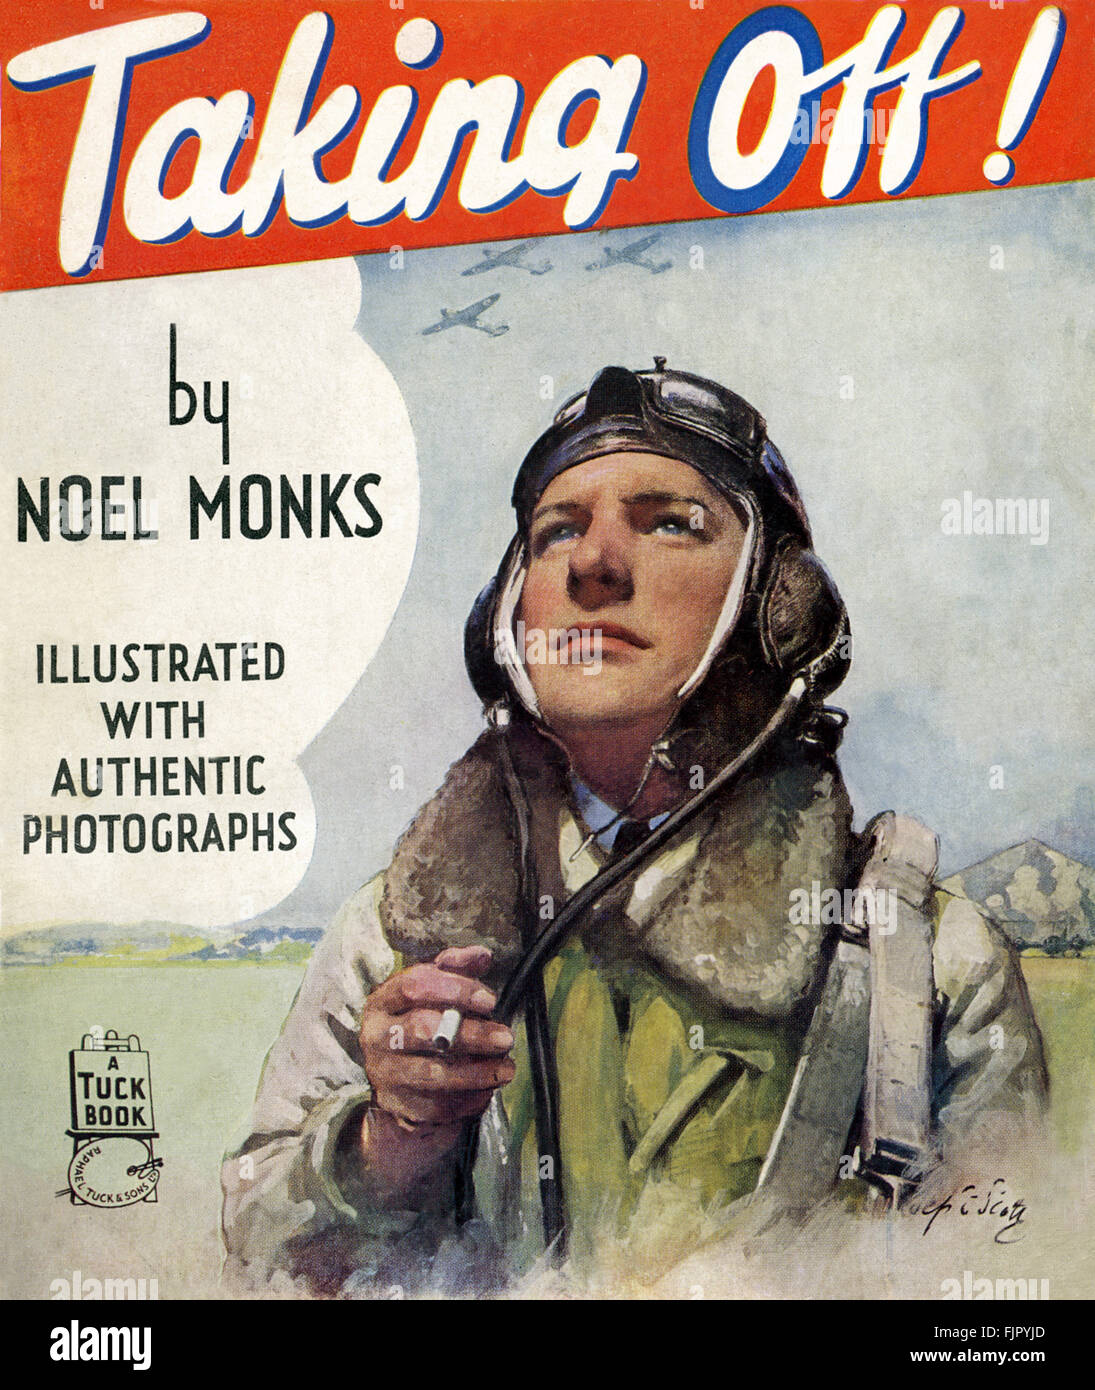 Cover for TAKING OFF! By Noel Monks, c 1940. airman holding cigarette. - Stock Image